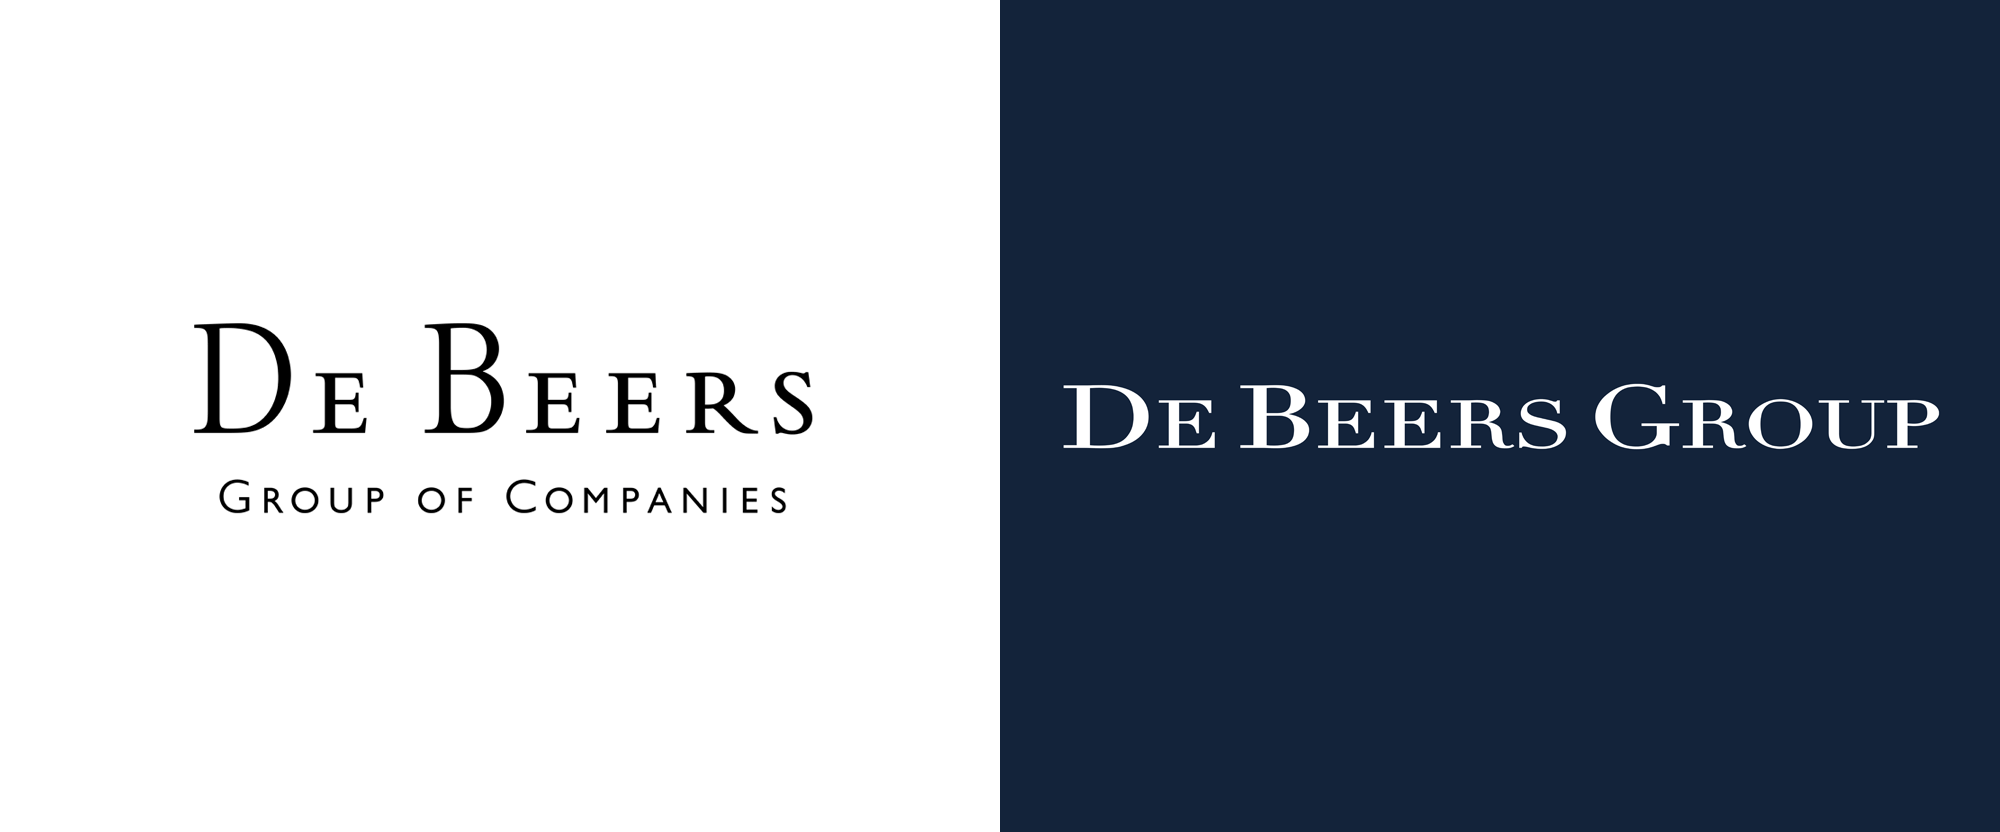 Brand New: New Logo and Identity for De Beers Group by PW.